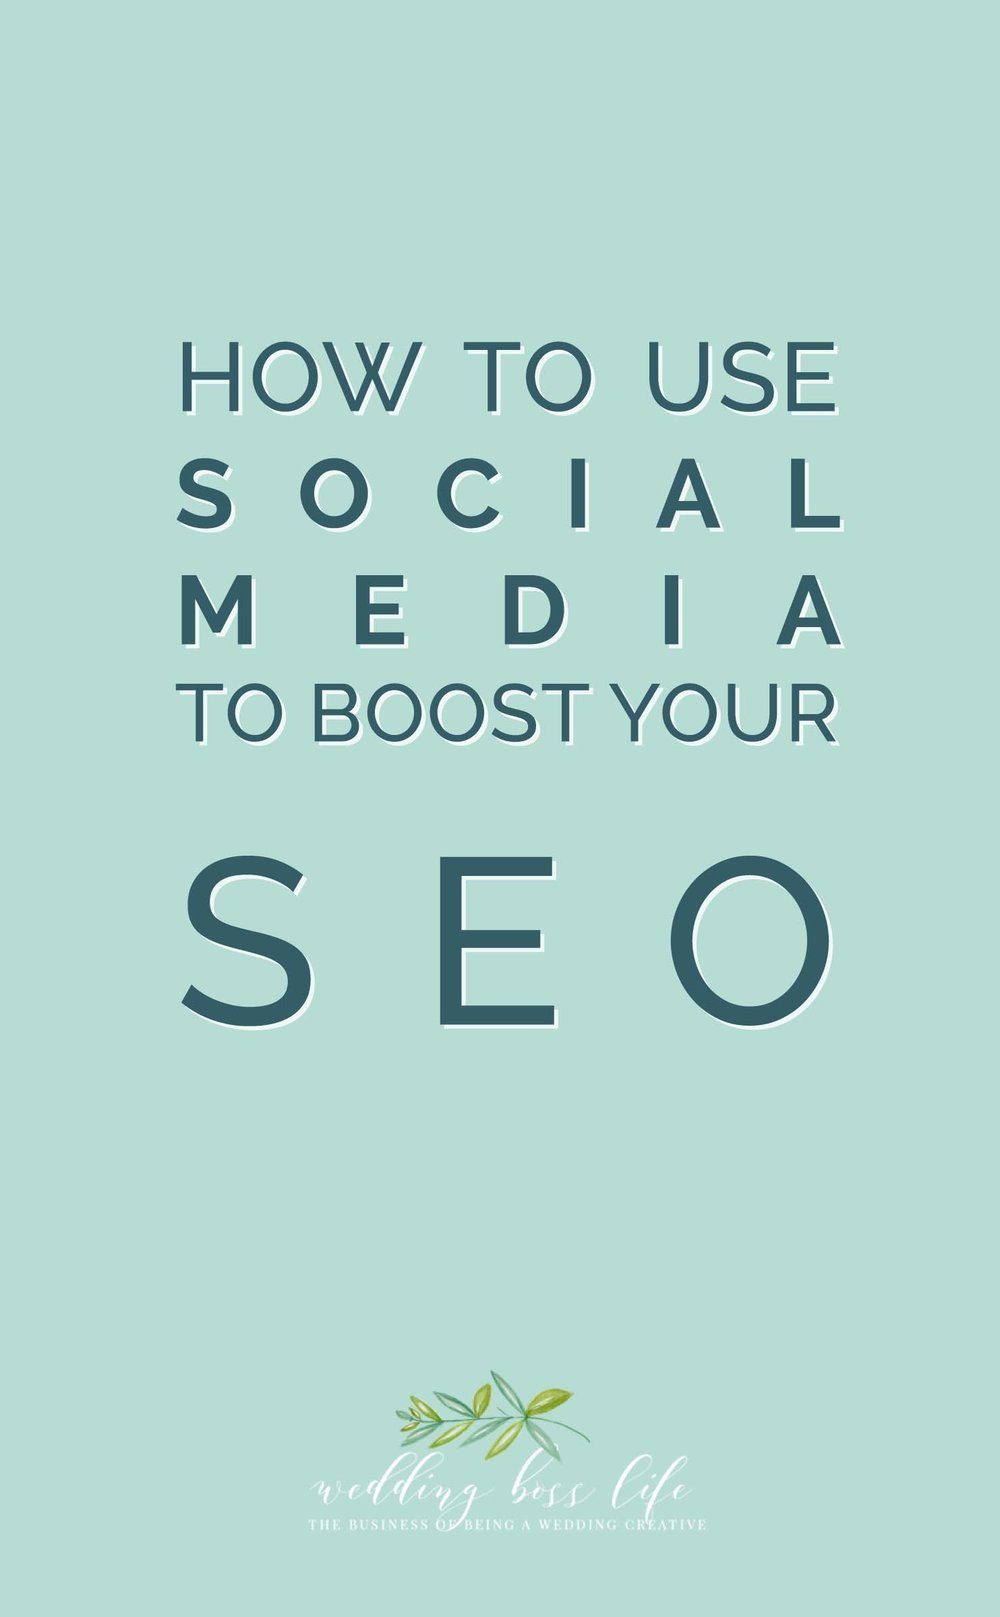 How to Use Social Media to Boost Your SEO